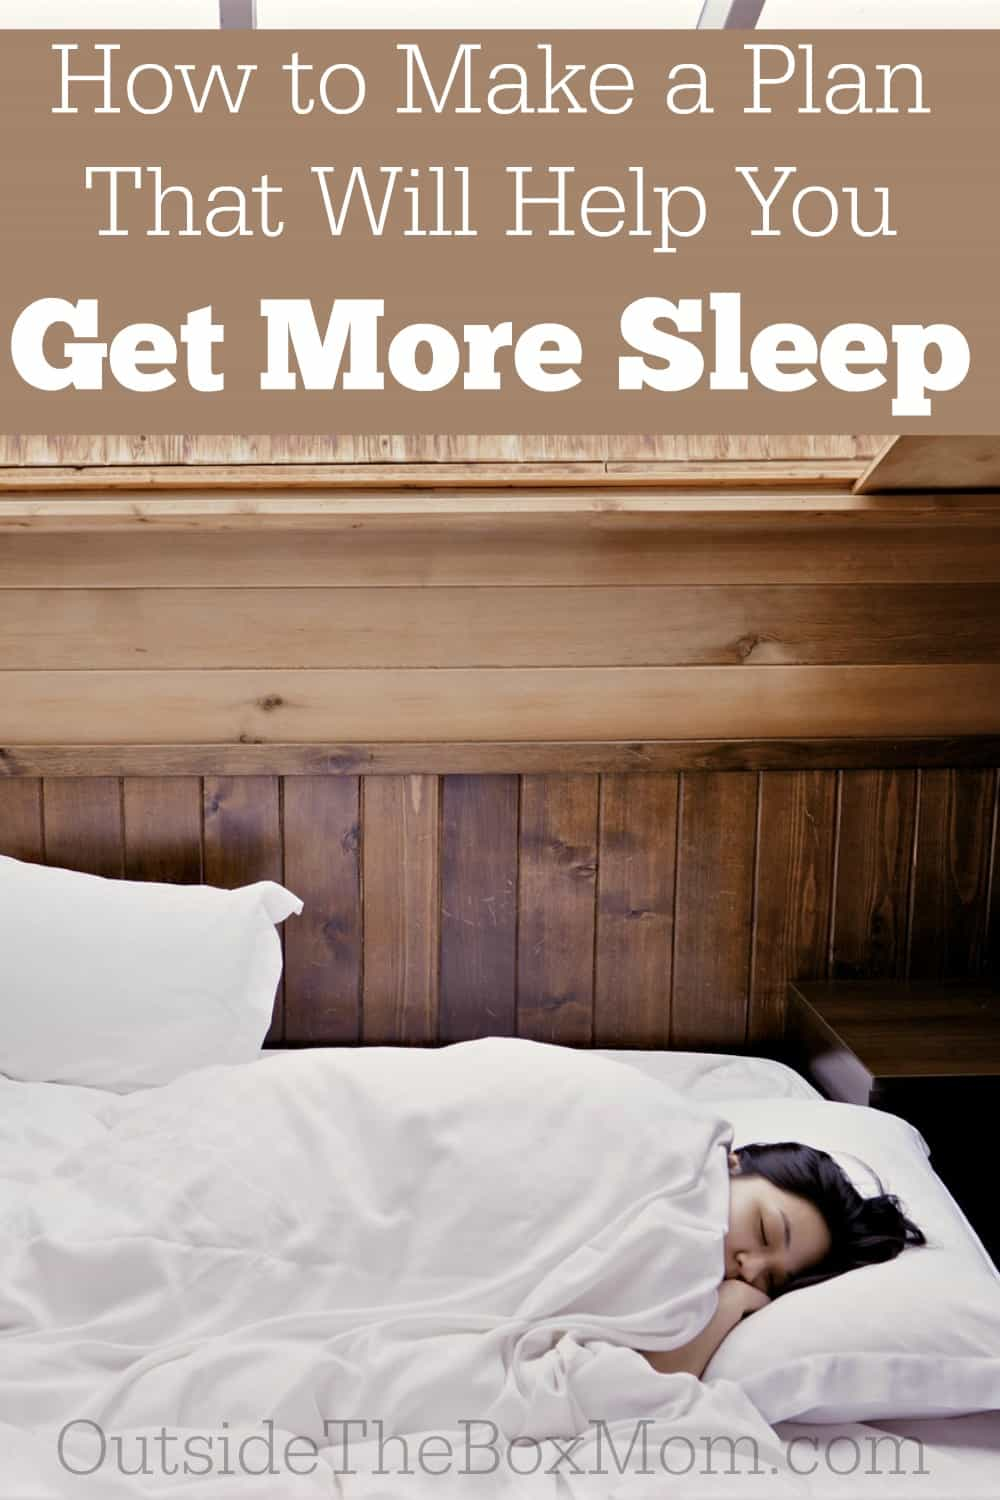 Do you wish you could get more sleep? Does it seem like the to-do list never ends? Don't miss these five fantastic (and super easy) ways to make a plan that will help you get more sleep...tonight!